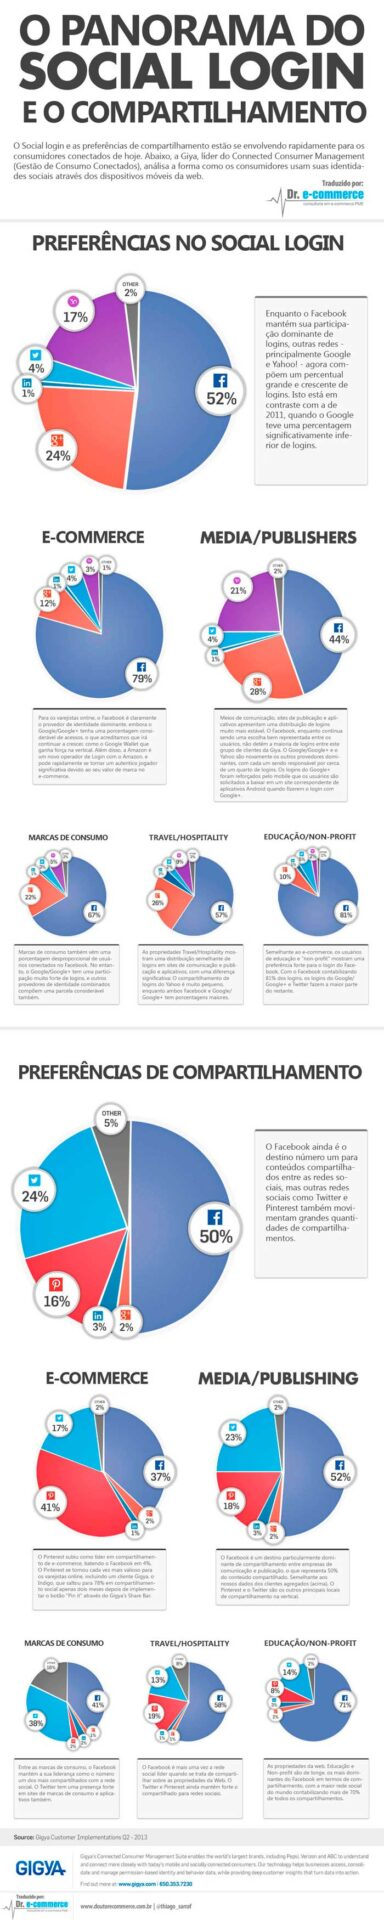 Infográfico: O Panorama do Social Login e o Compartilhamento